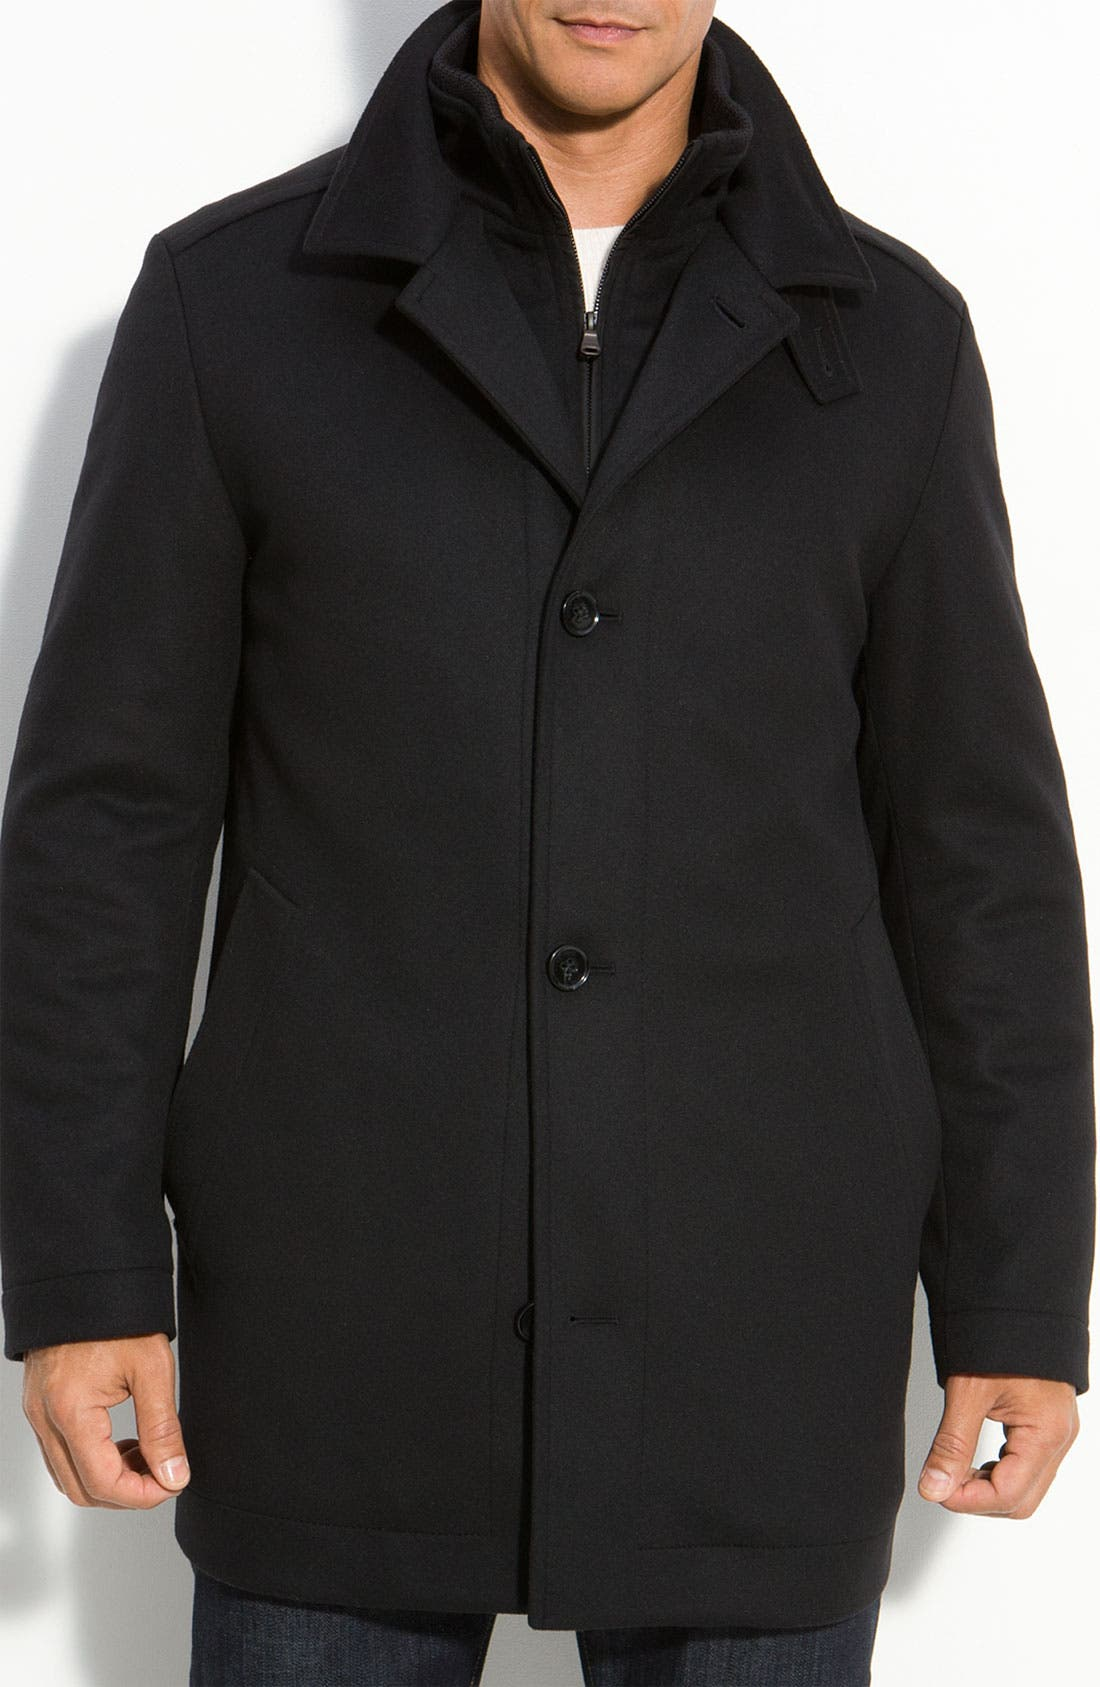 Main Image - BOSS HUGO BOSS 'Coxtan' Wool & Cashmere Coat